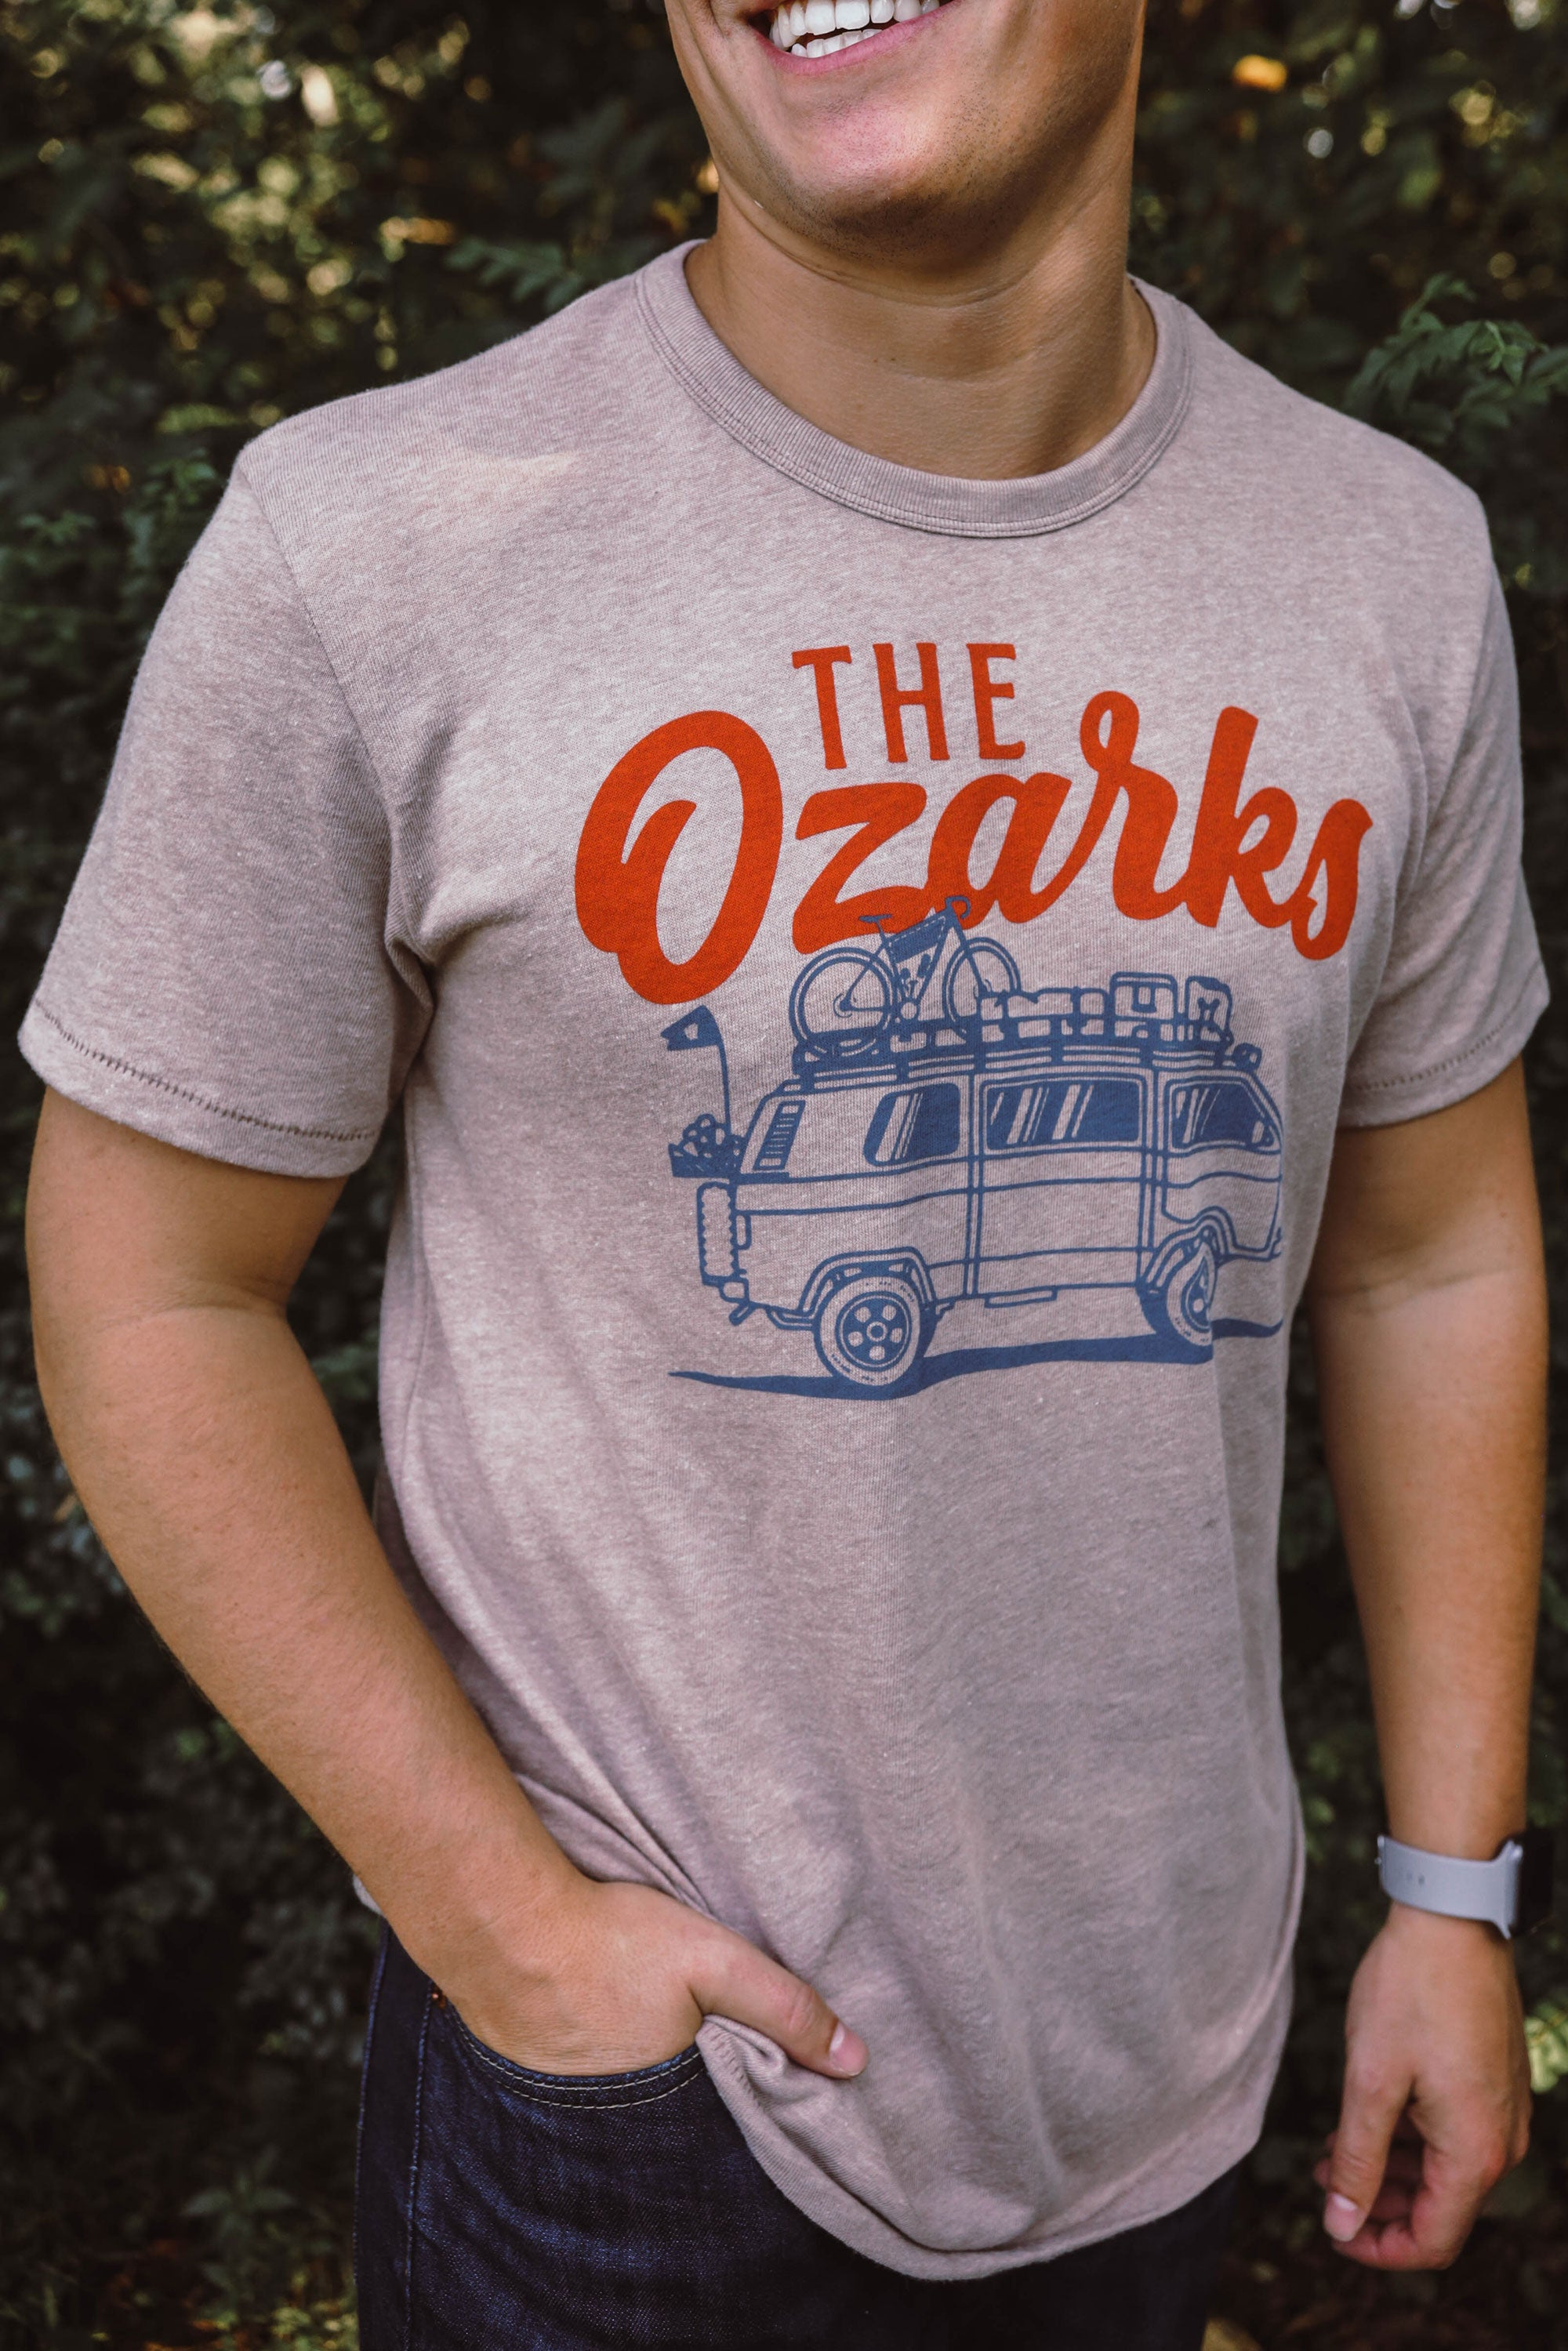 Let's Take A Road Trip T-shirt